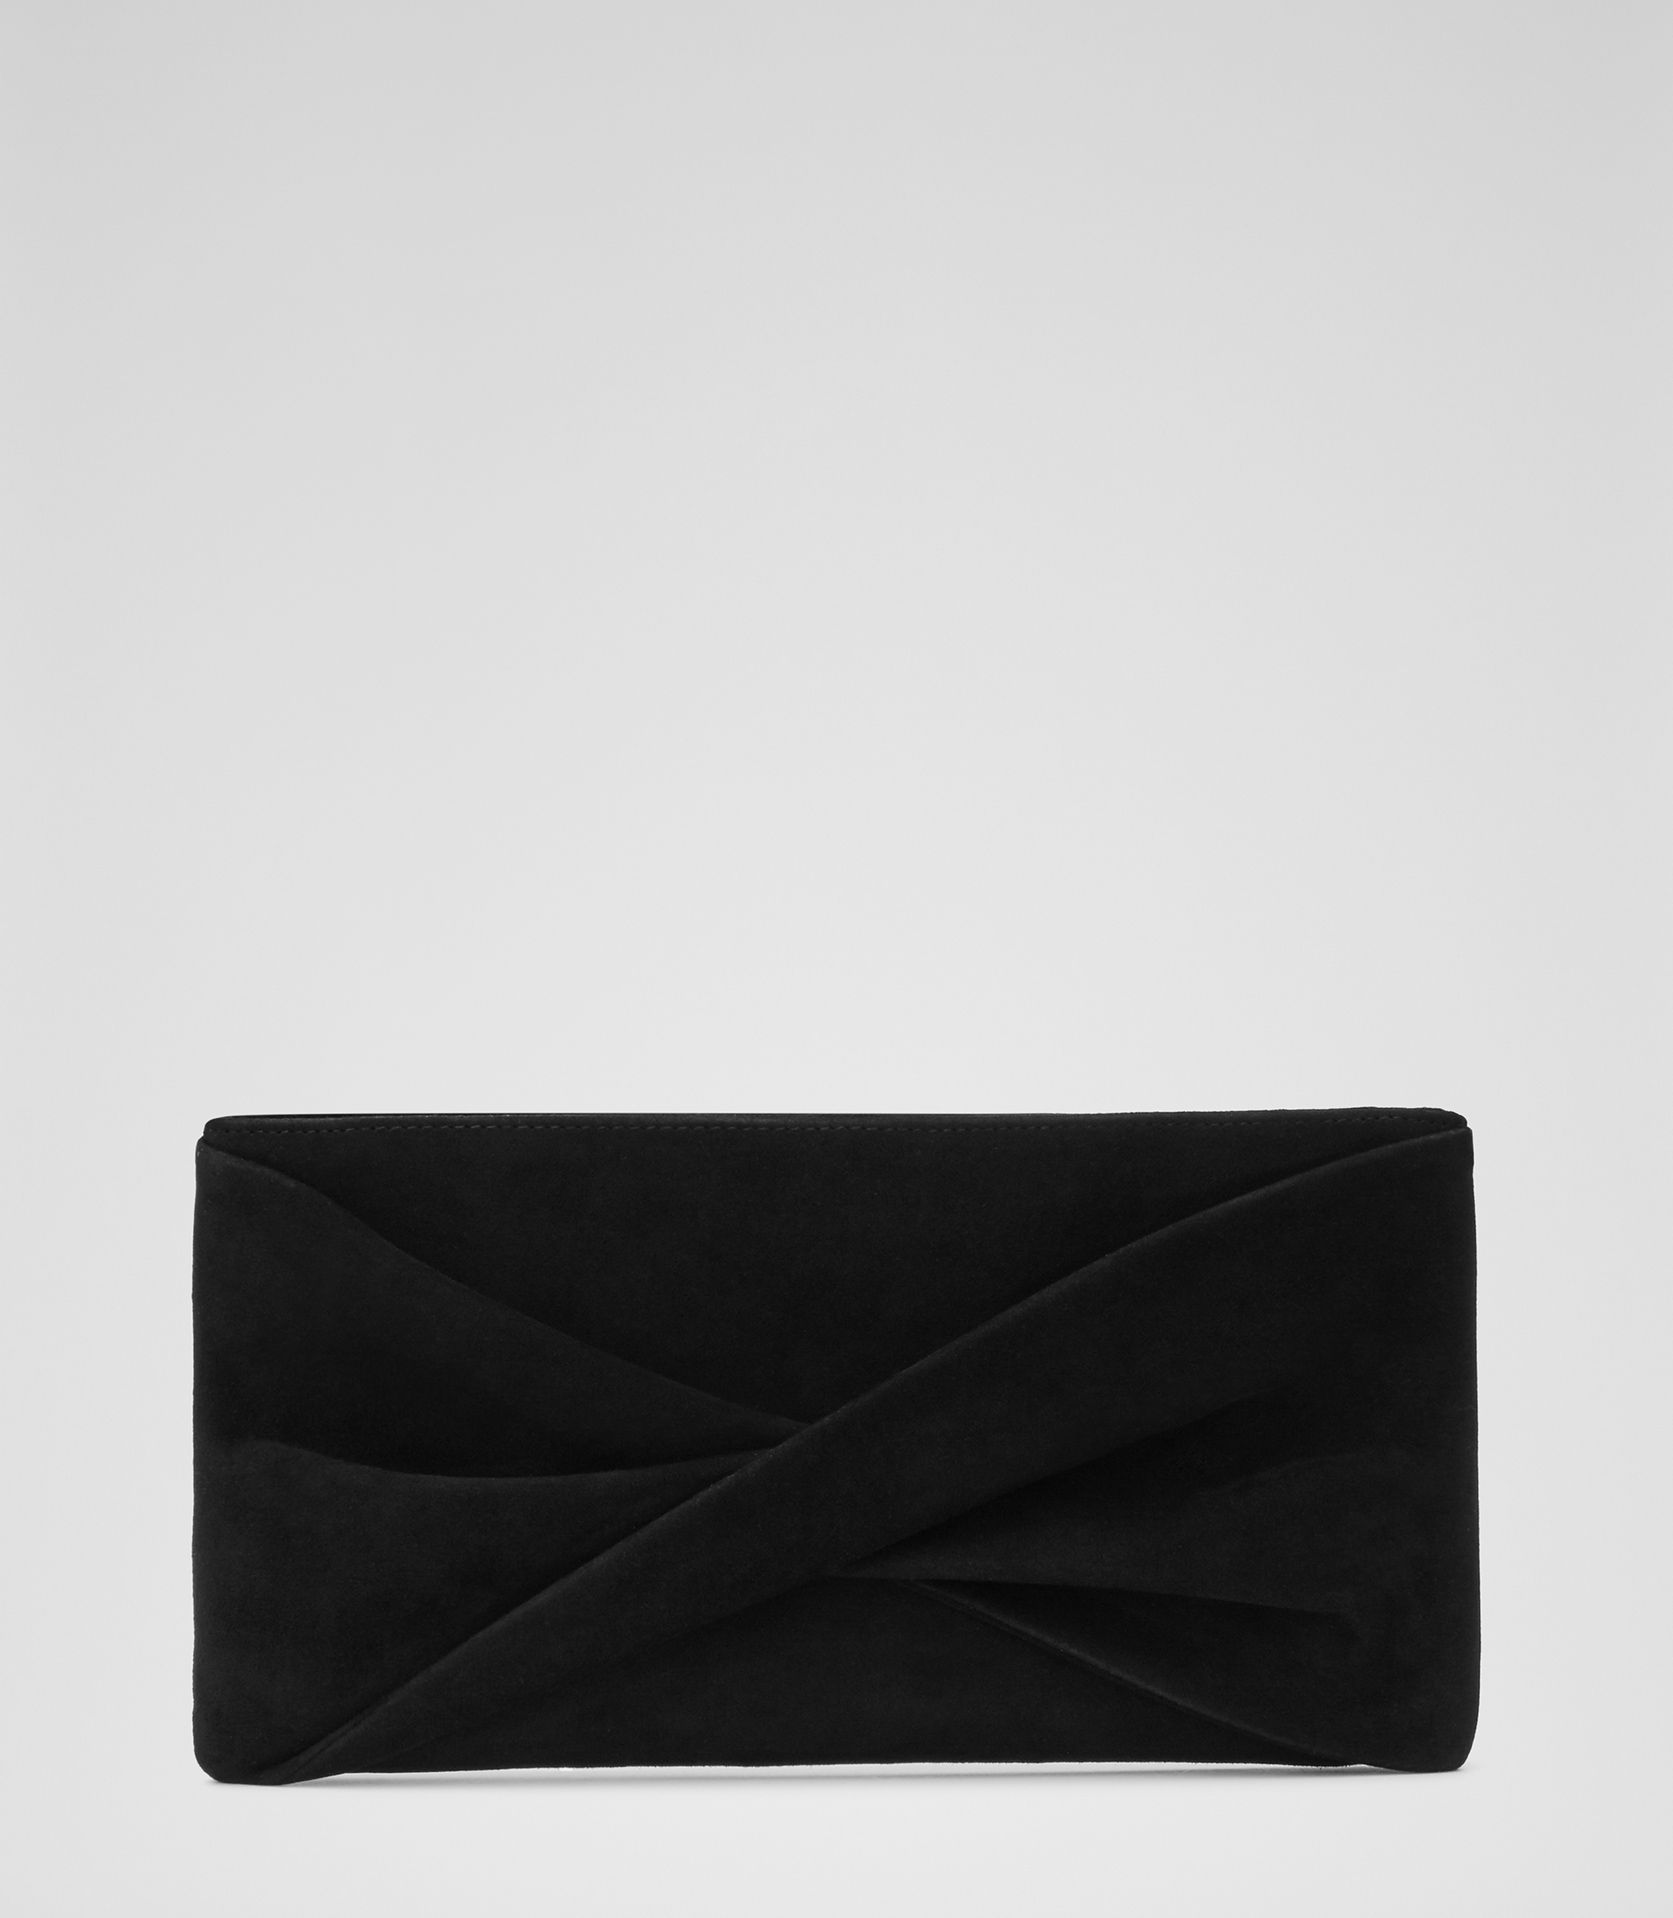 Baby Beau - Leather Clutch Bag in Black, Womens Reiss